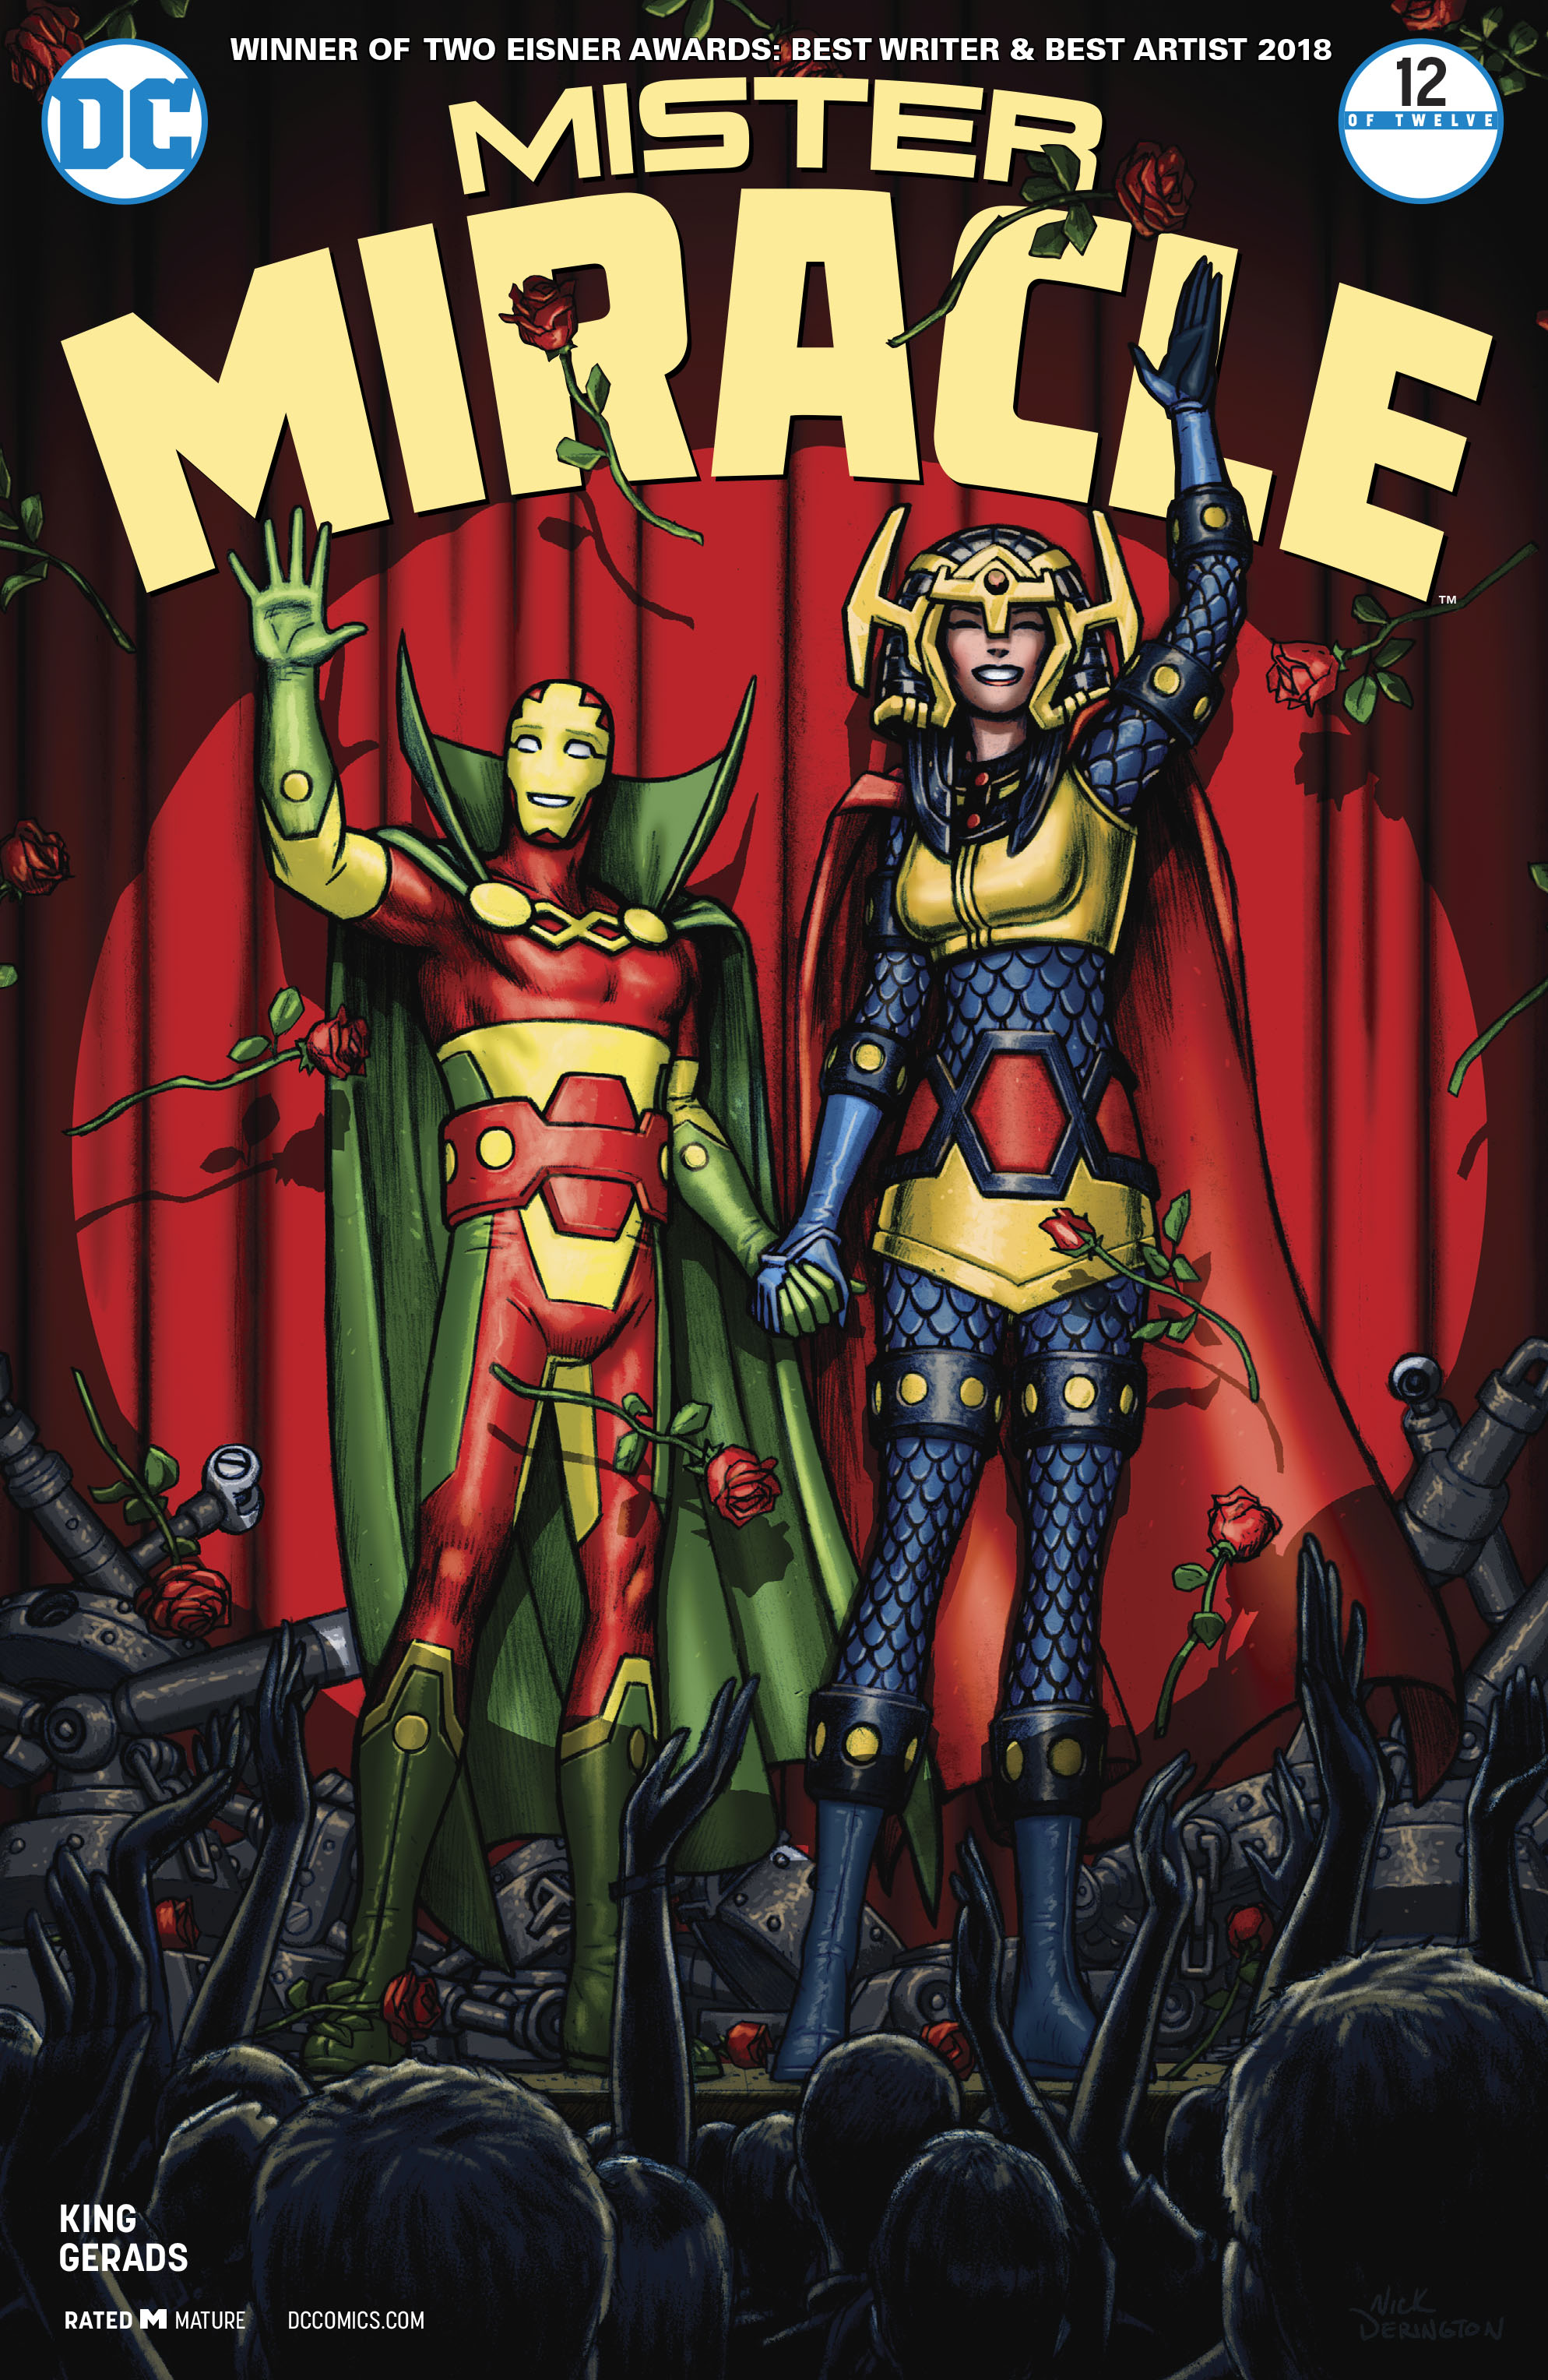 mister miracle 12 - cover